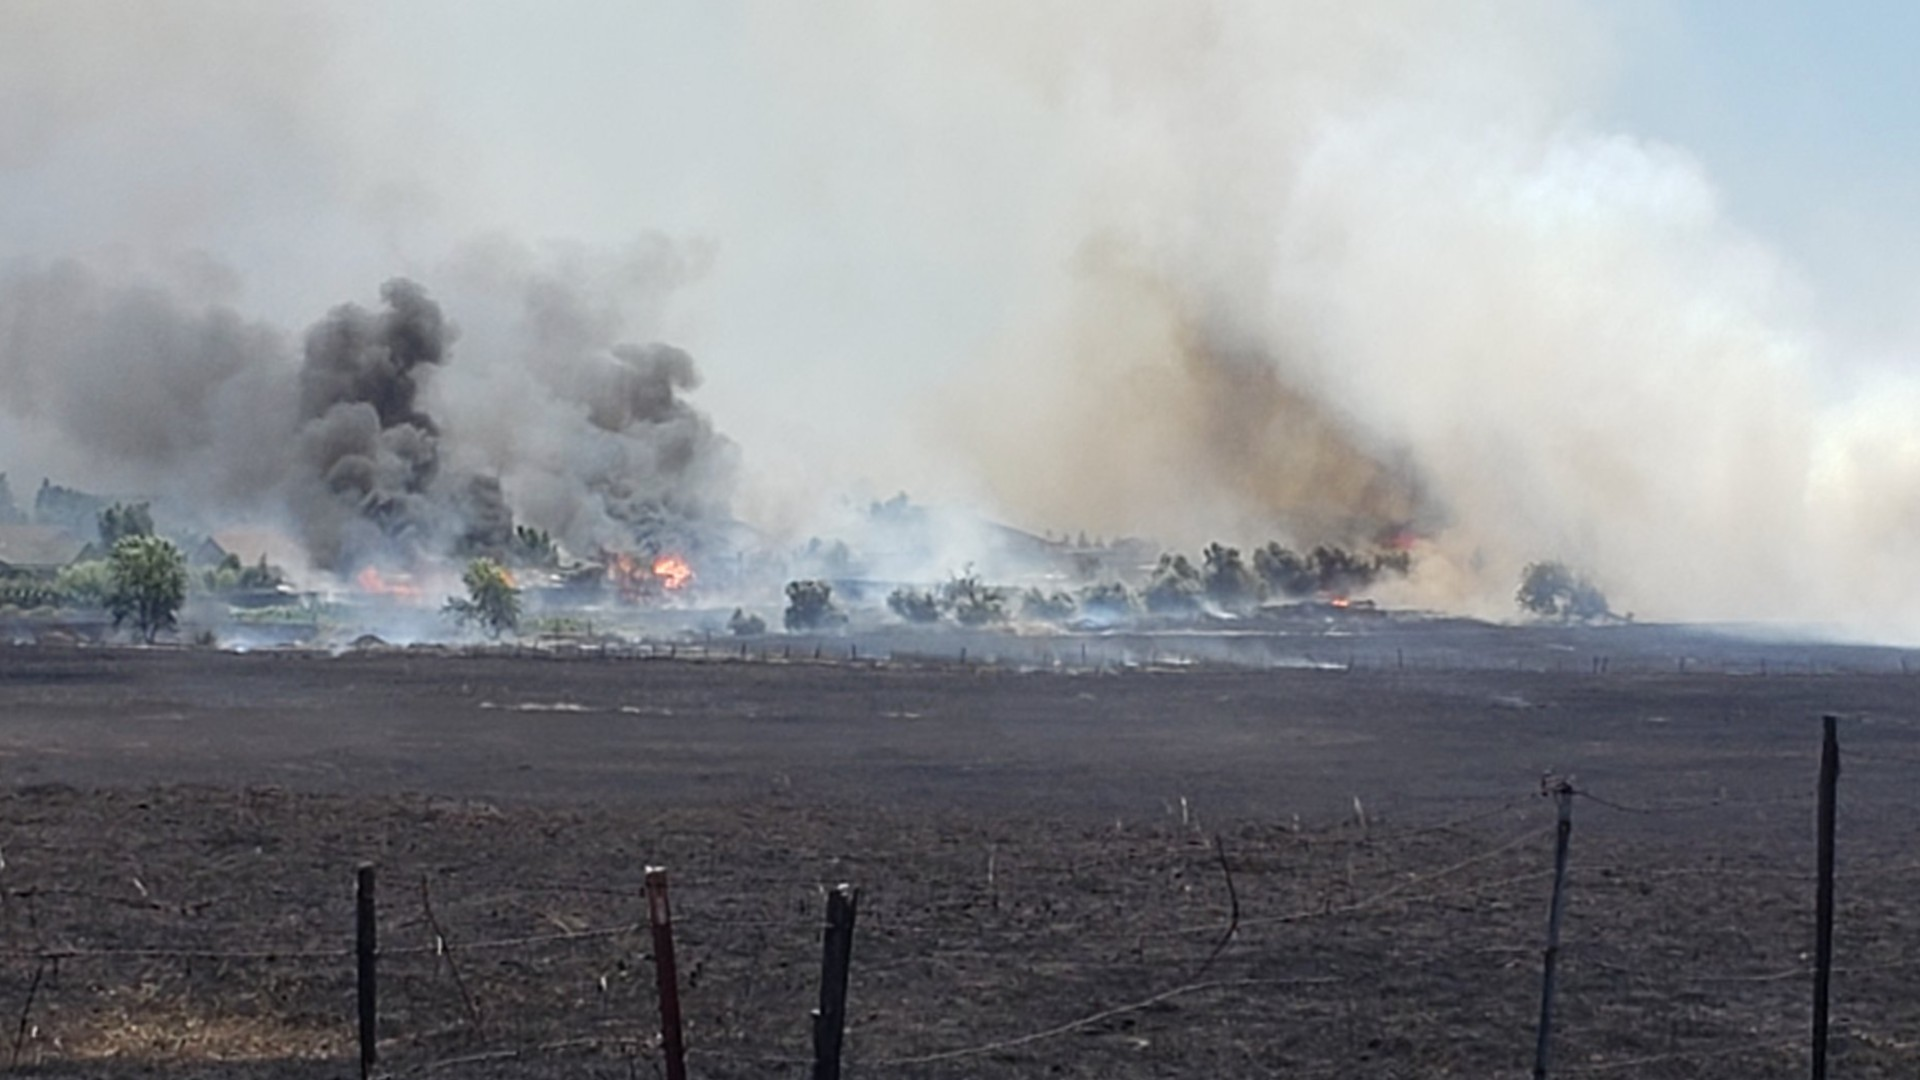 Cal Fire released this photo of the Nelson Fire burning in Butte County on June 17, 2020.